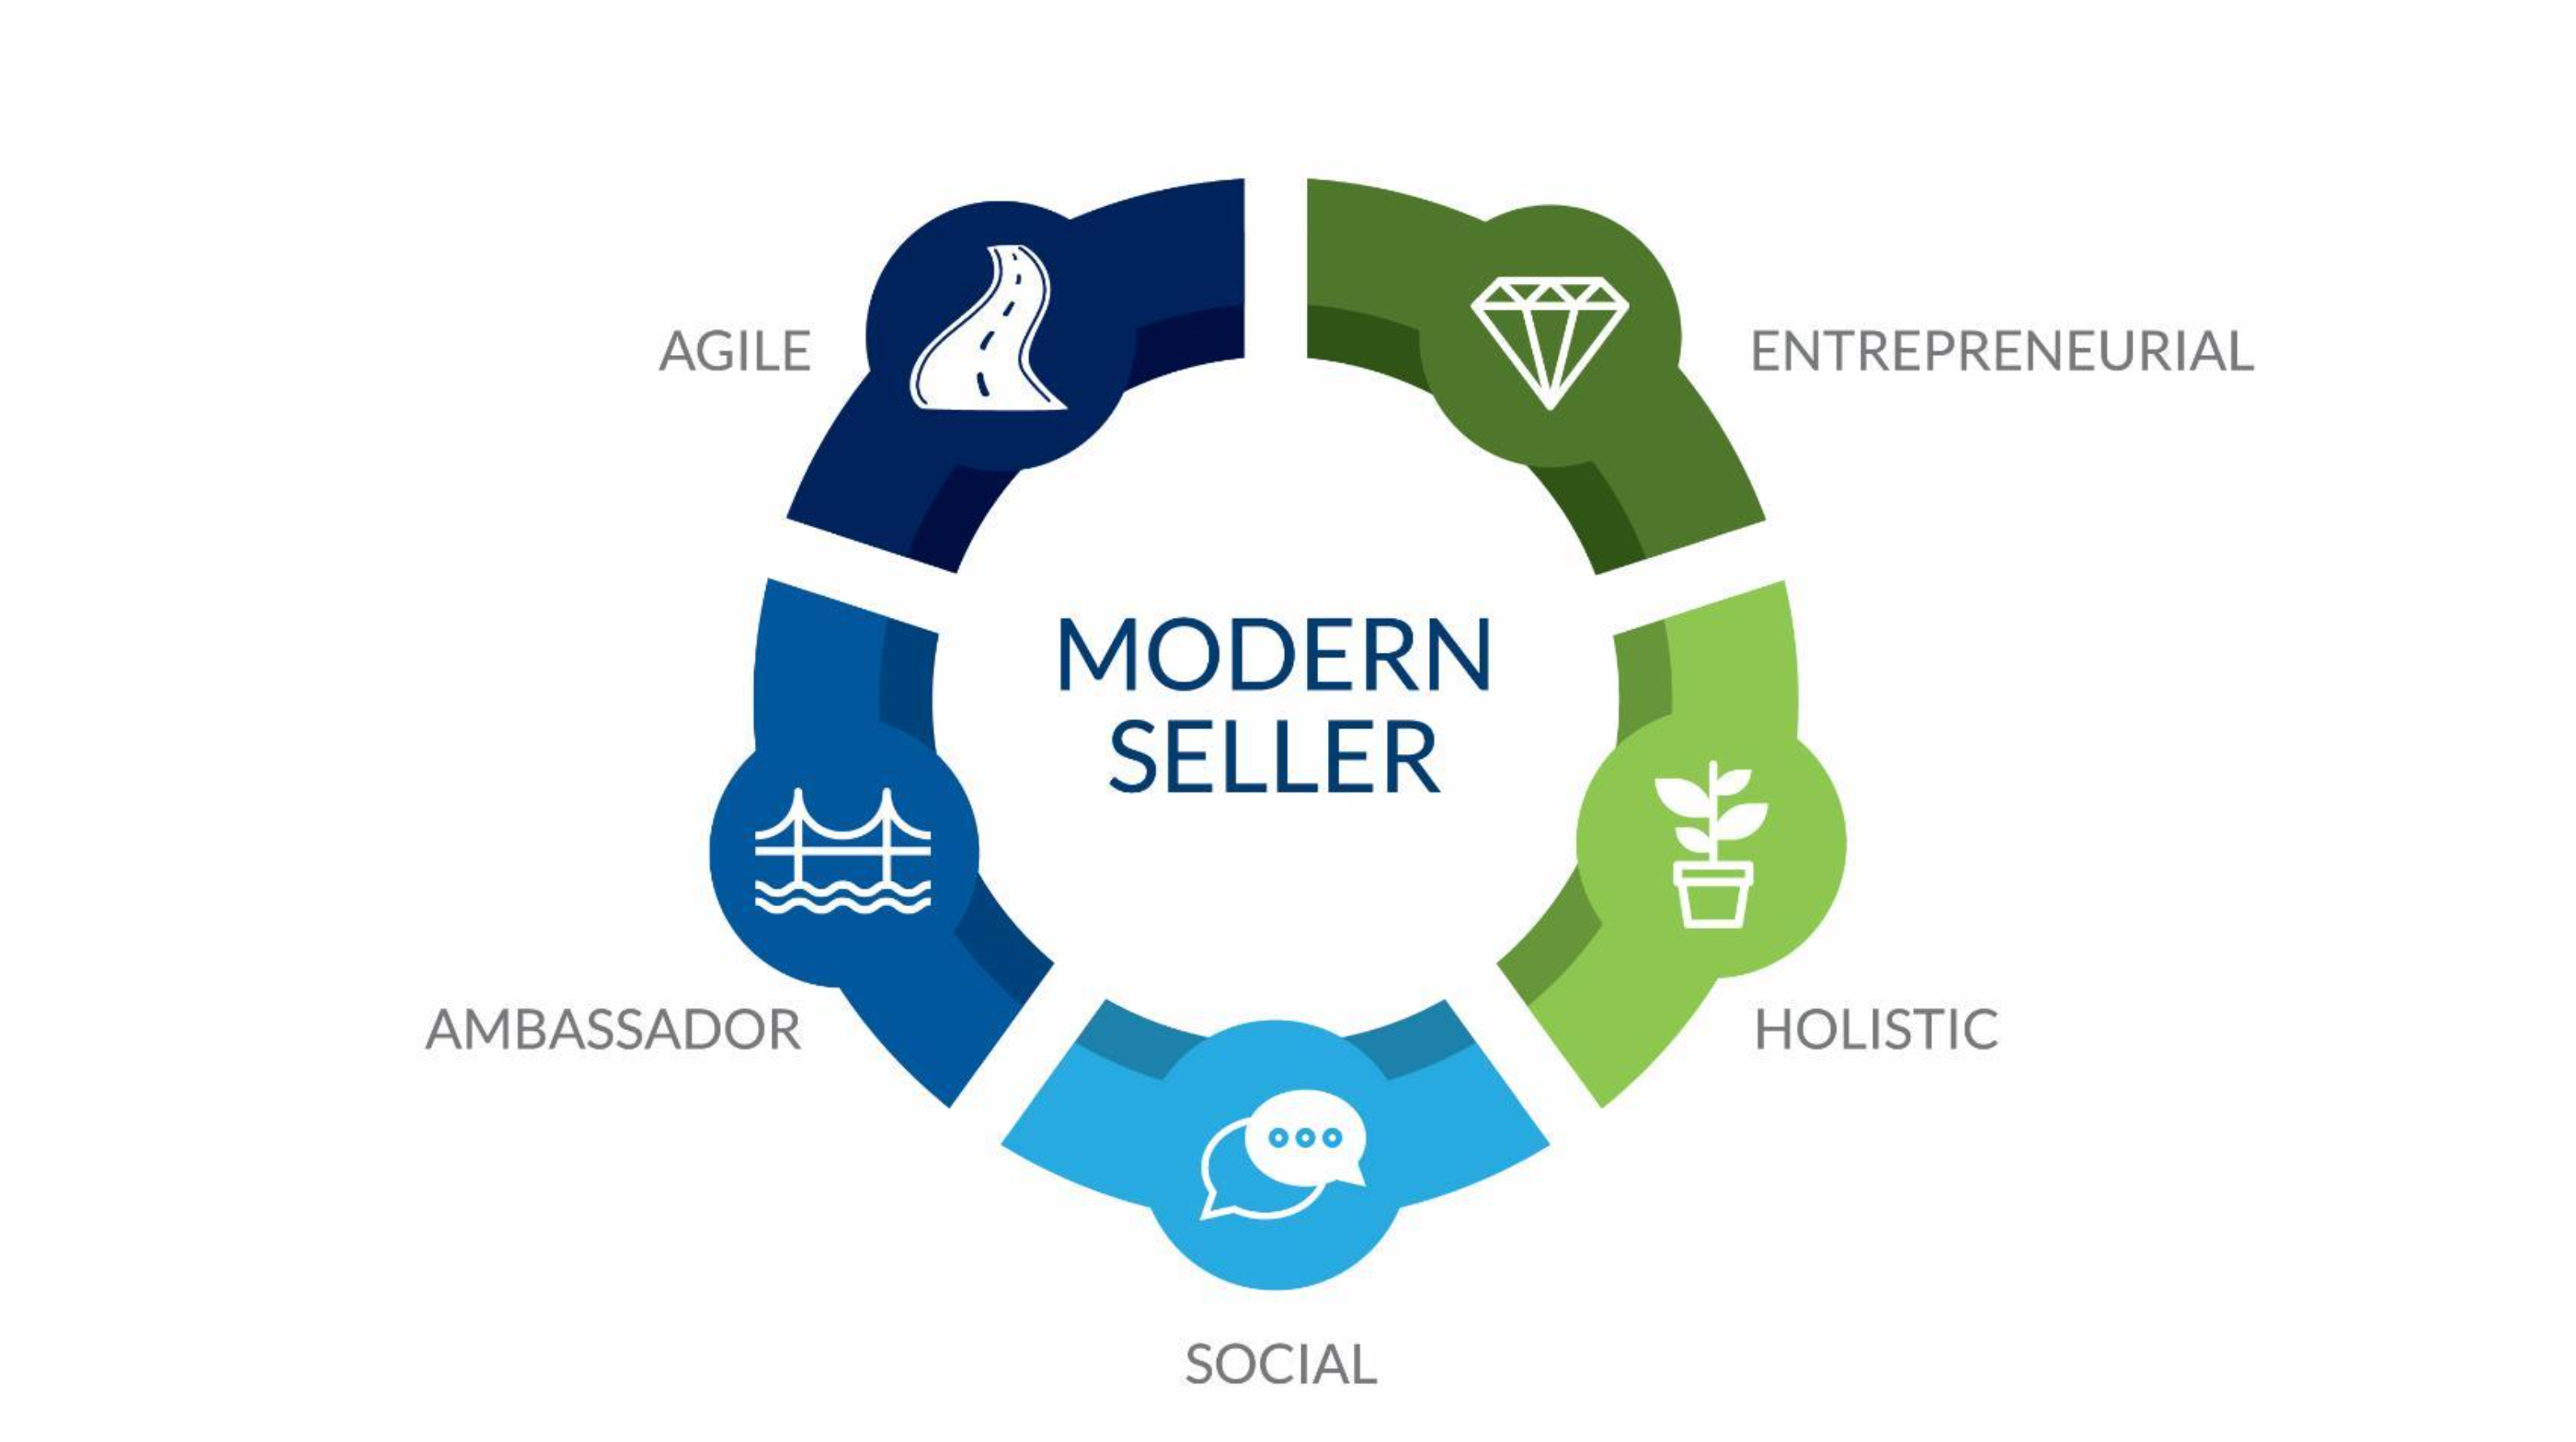 five dimensions of the modern seller